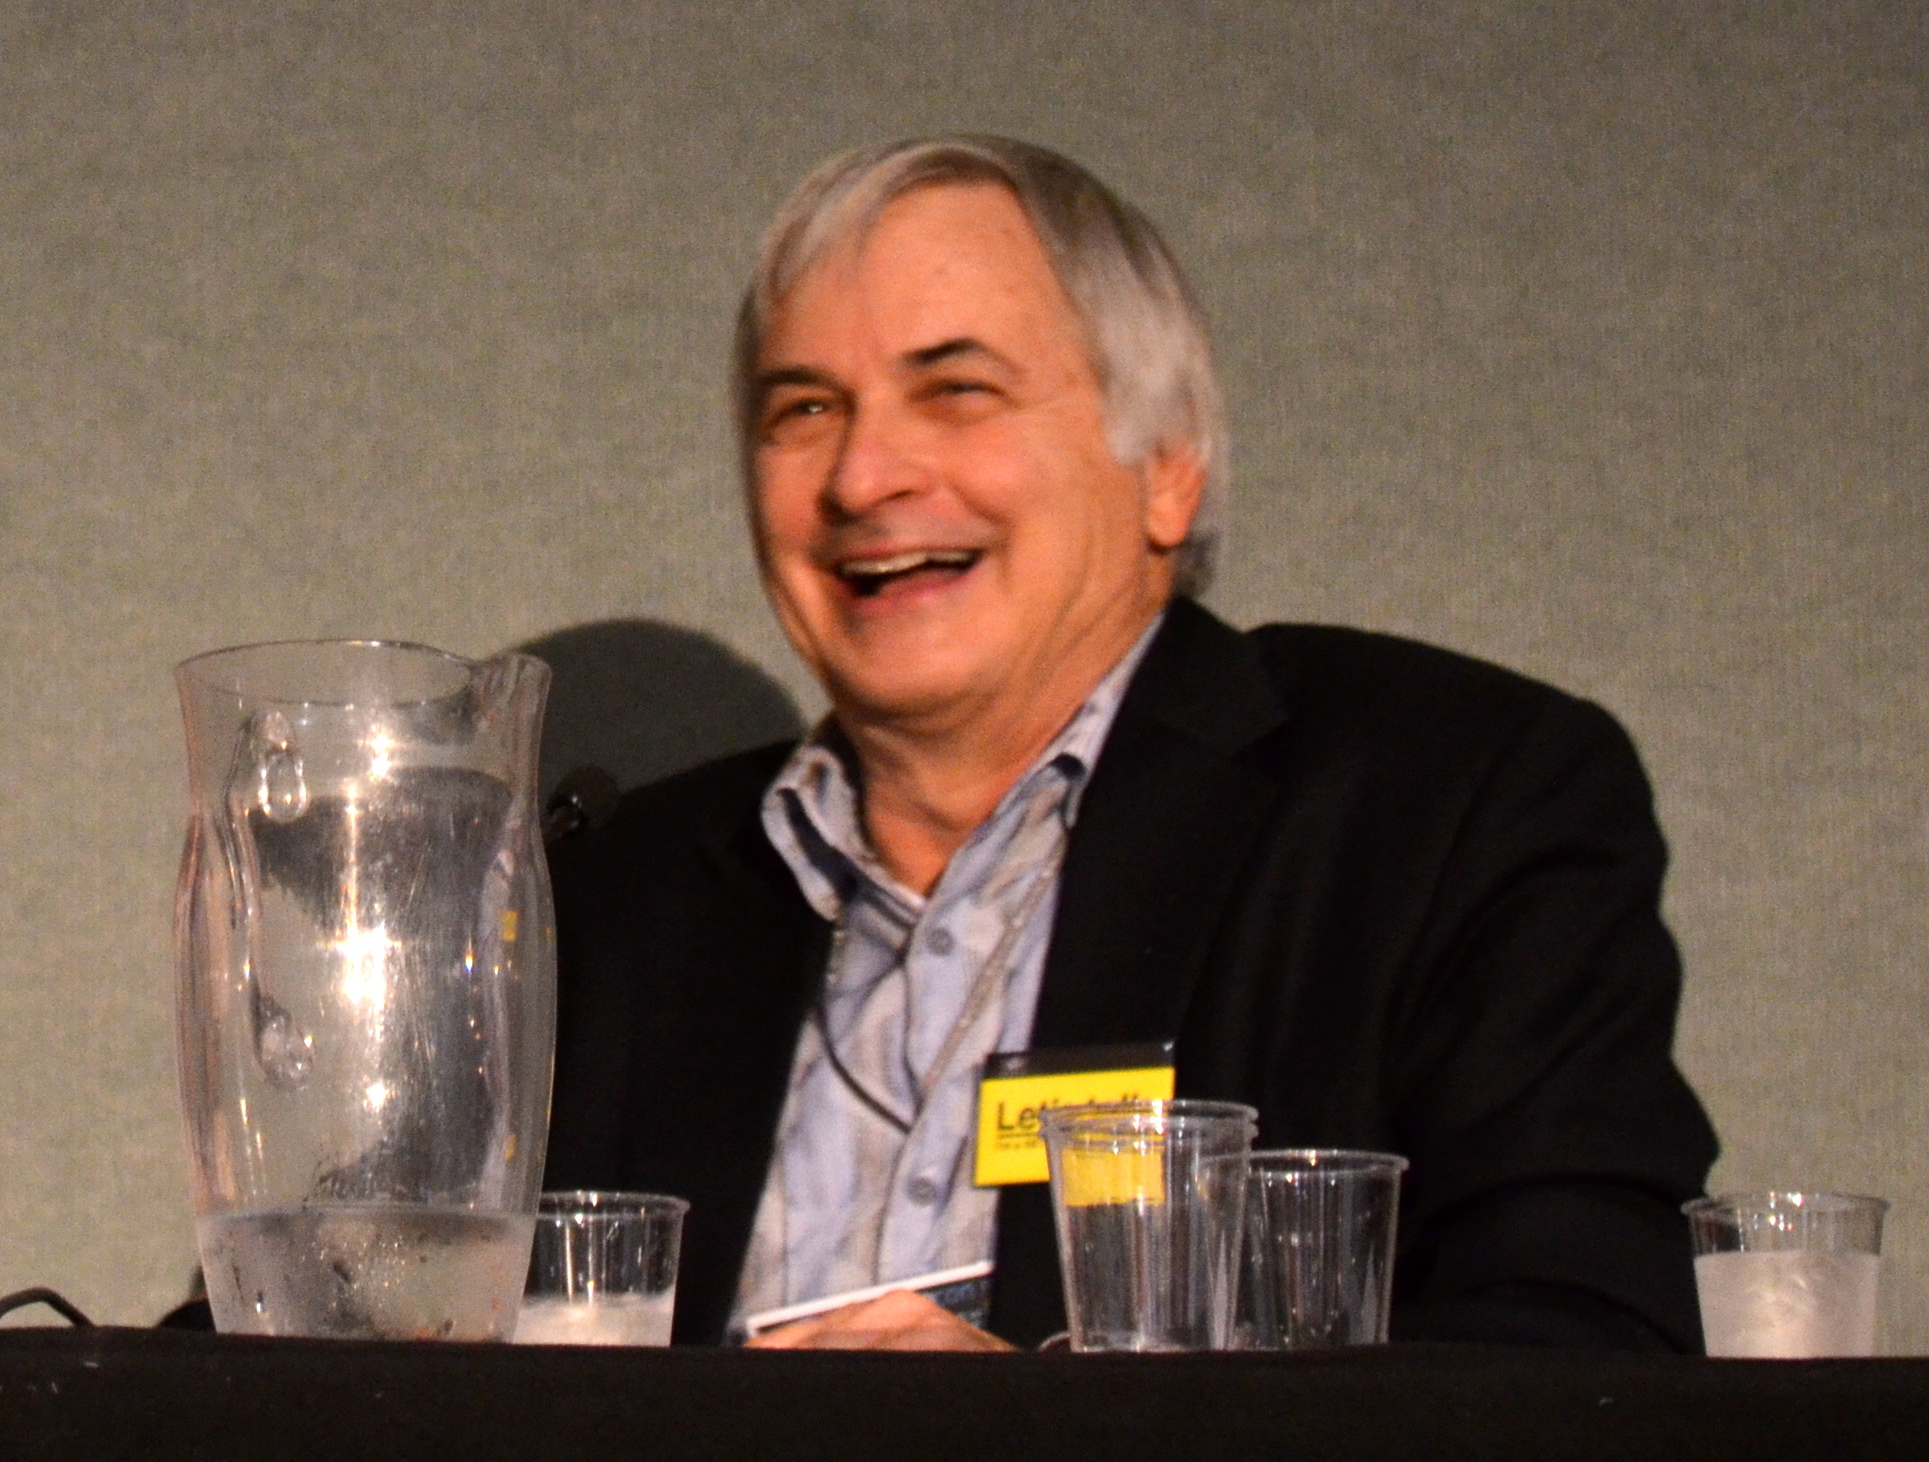 Seth Shostak, SETI, Science, Space, Extraterrestrial